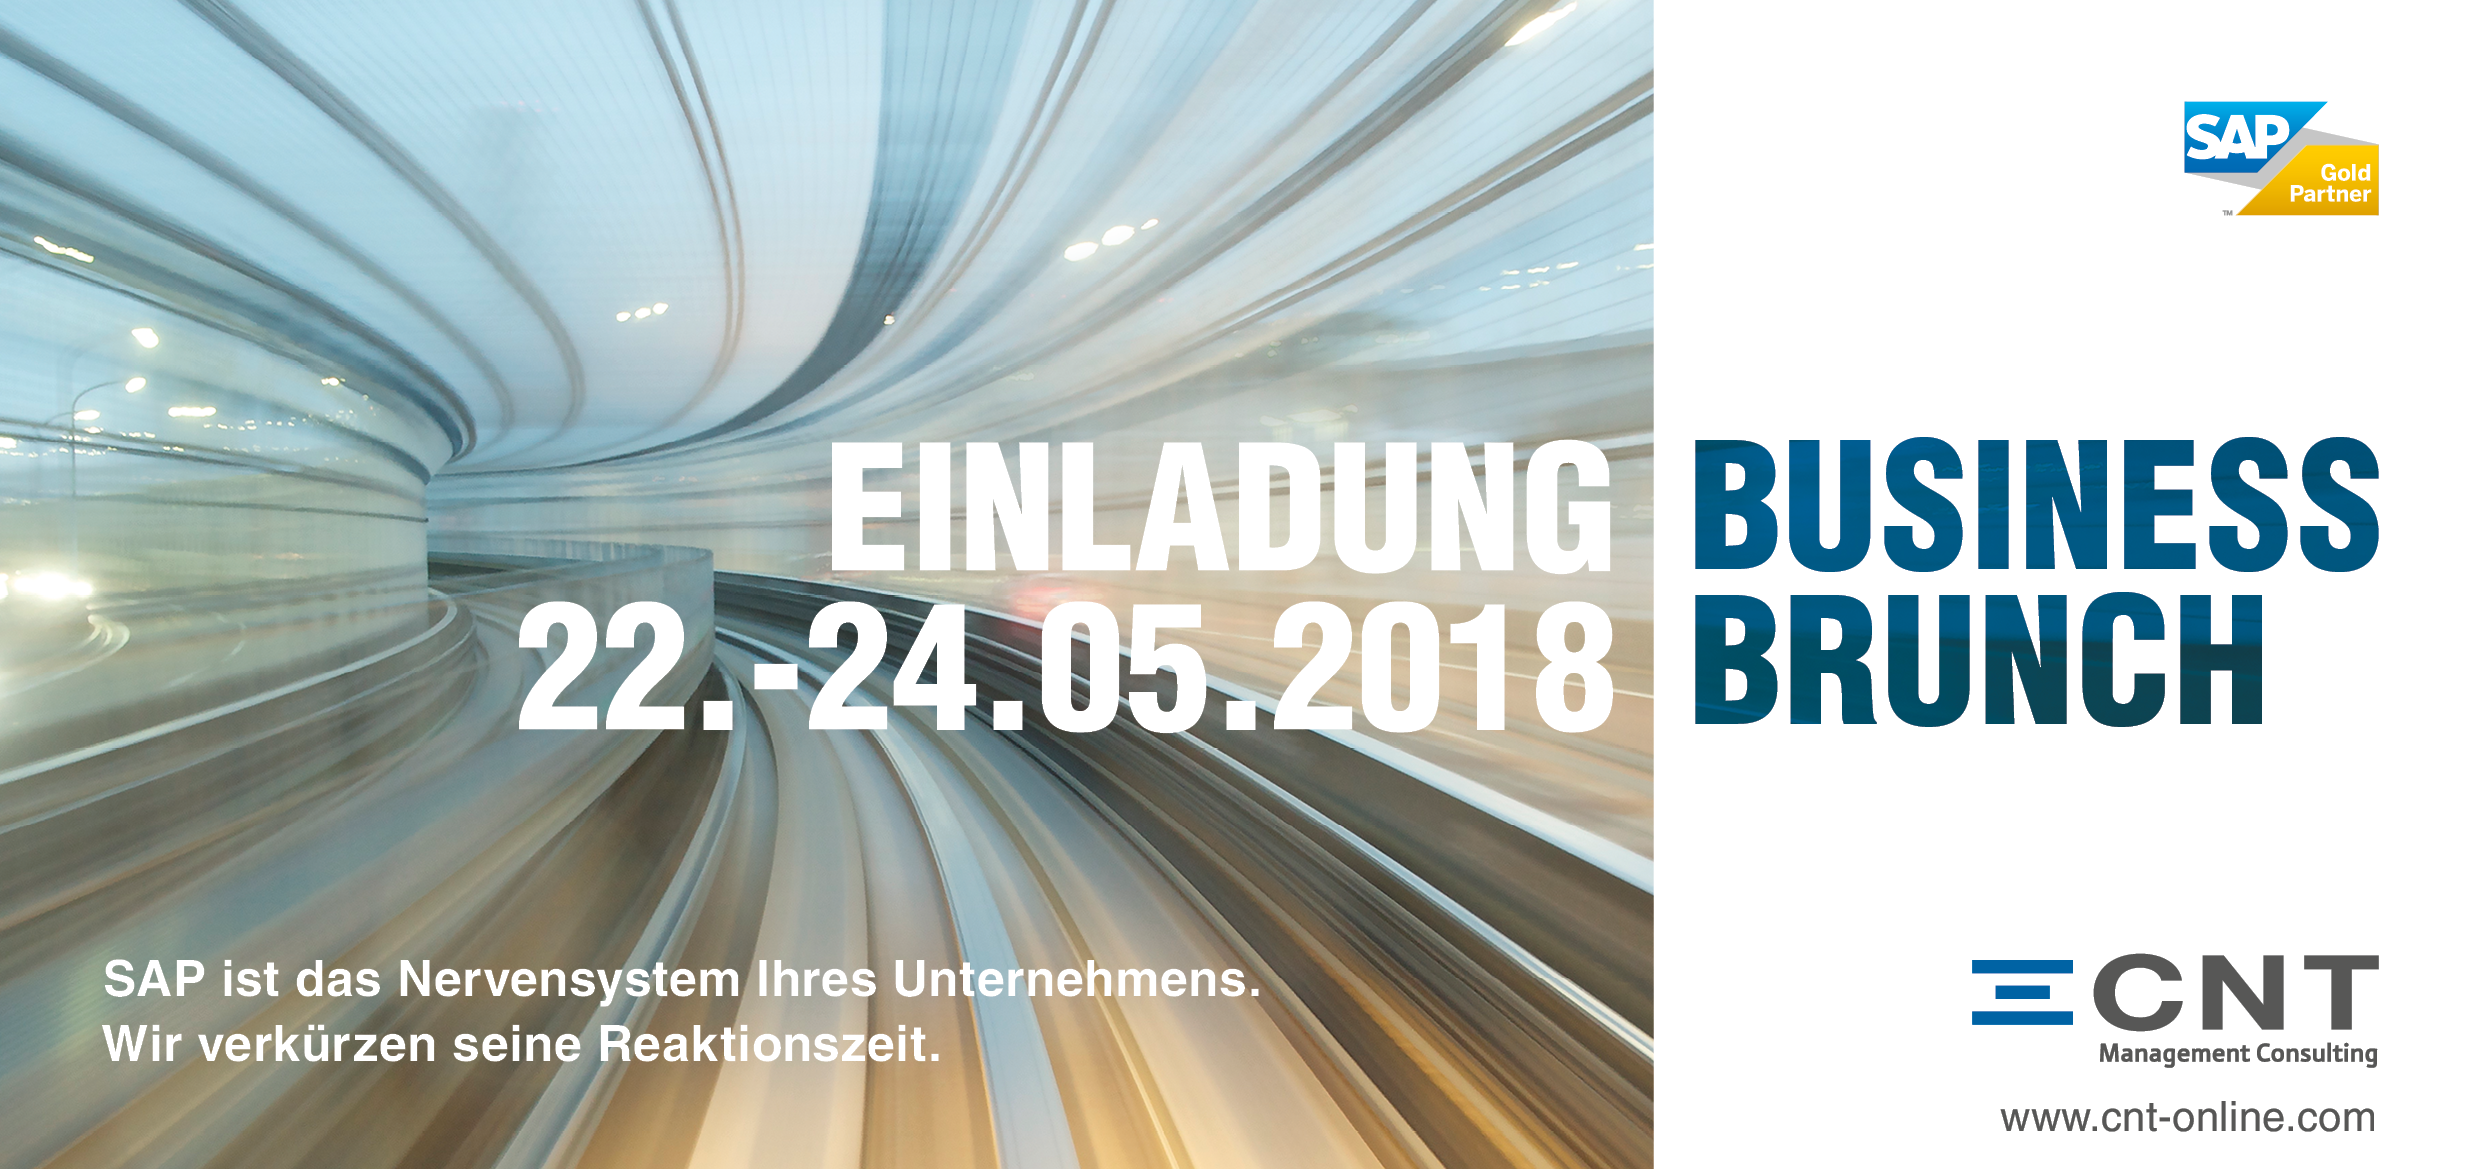 Business Brunch Tour Ost 2018